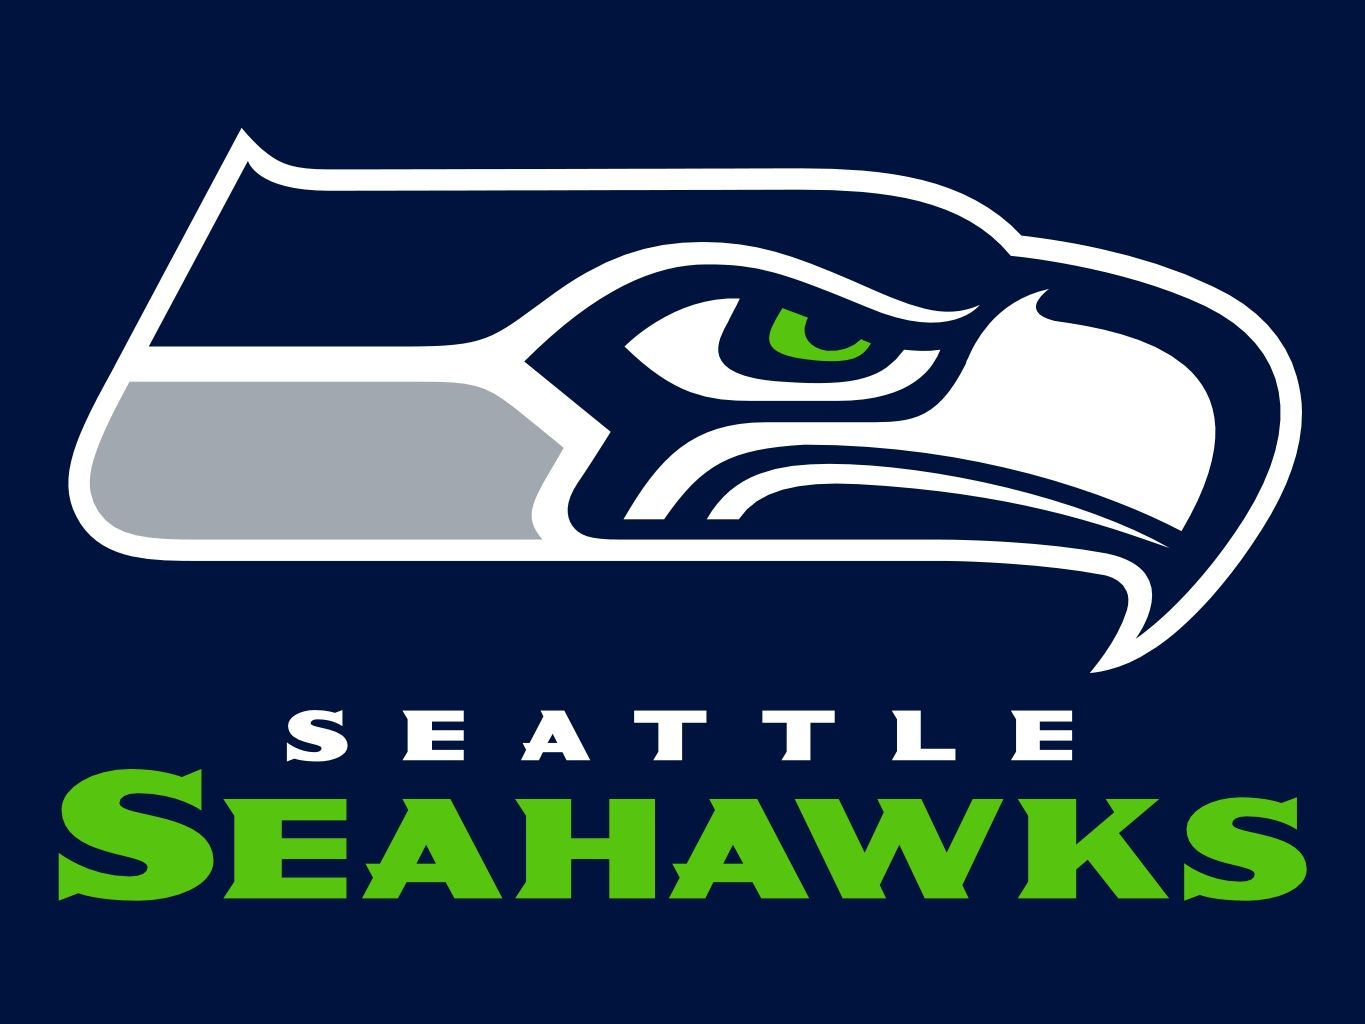 Seattle Seahawks | NFL equipos | Pinterest | NFL y Equipo